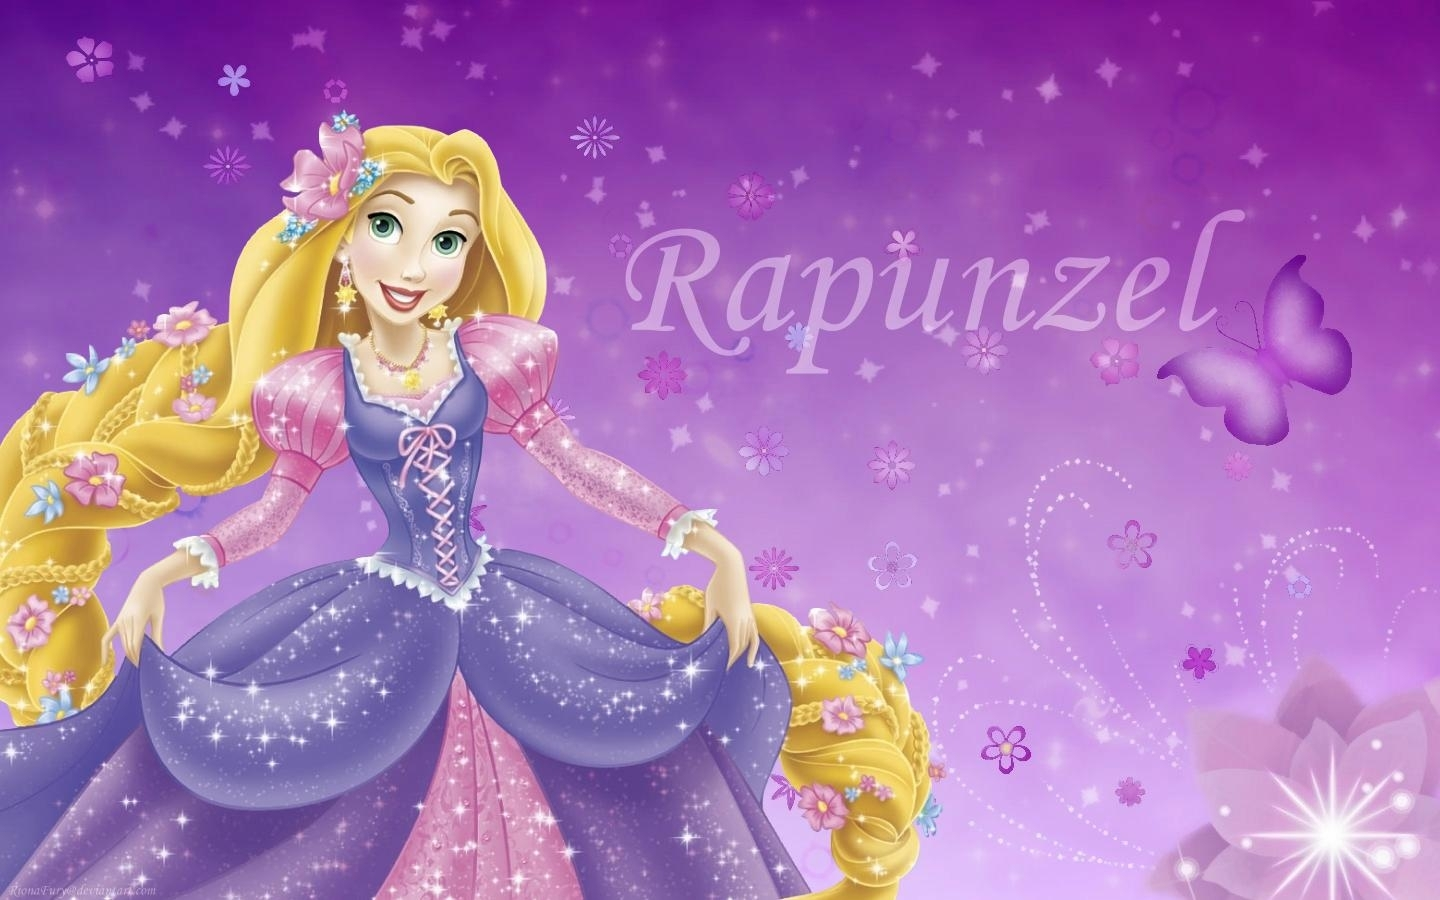 disney princess rapunzel background wallpaper 07837 - baltana